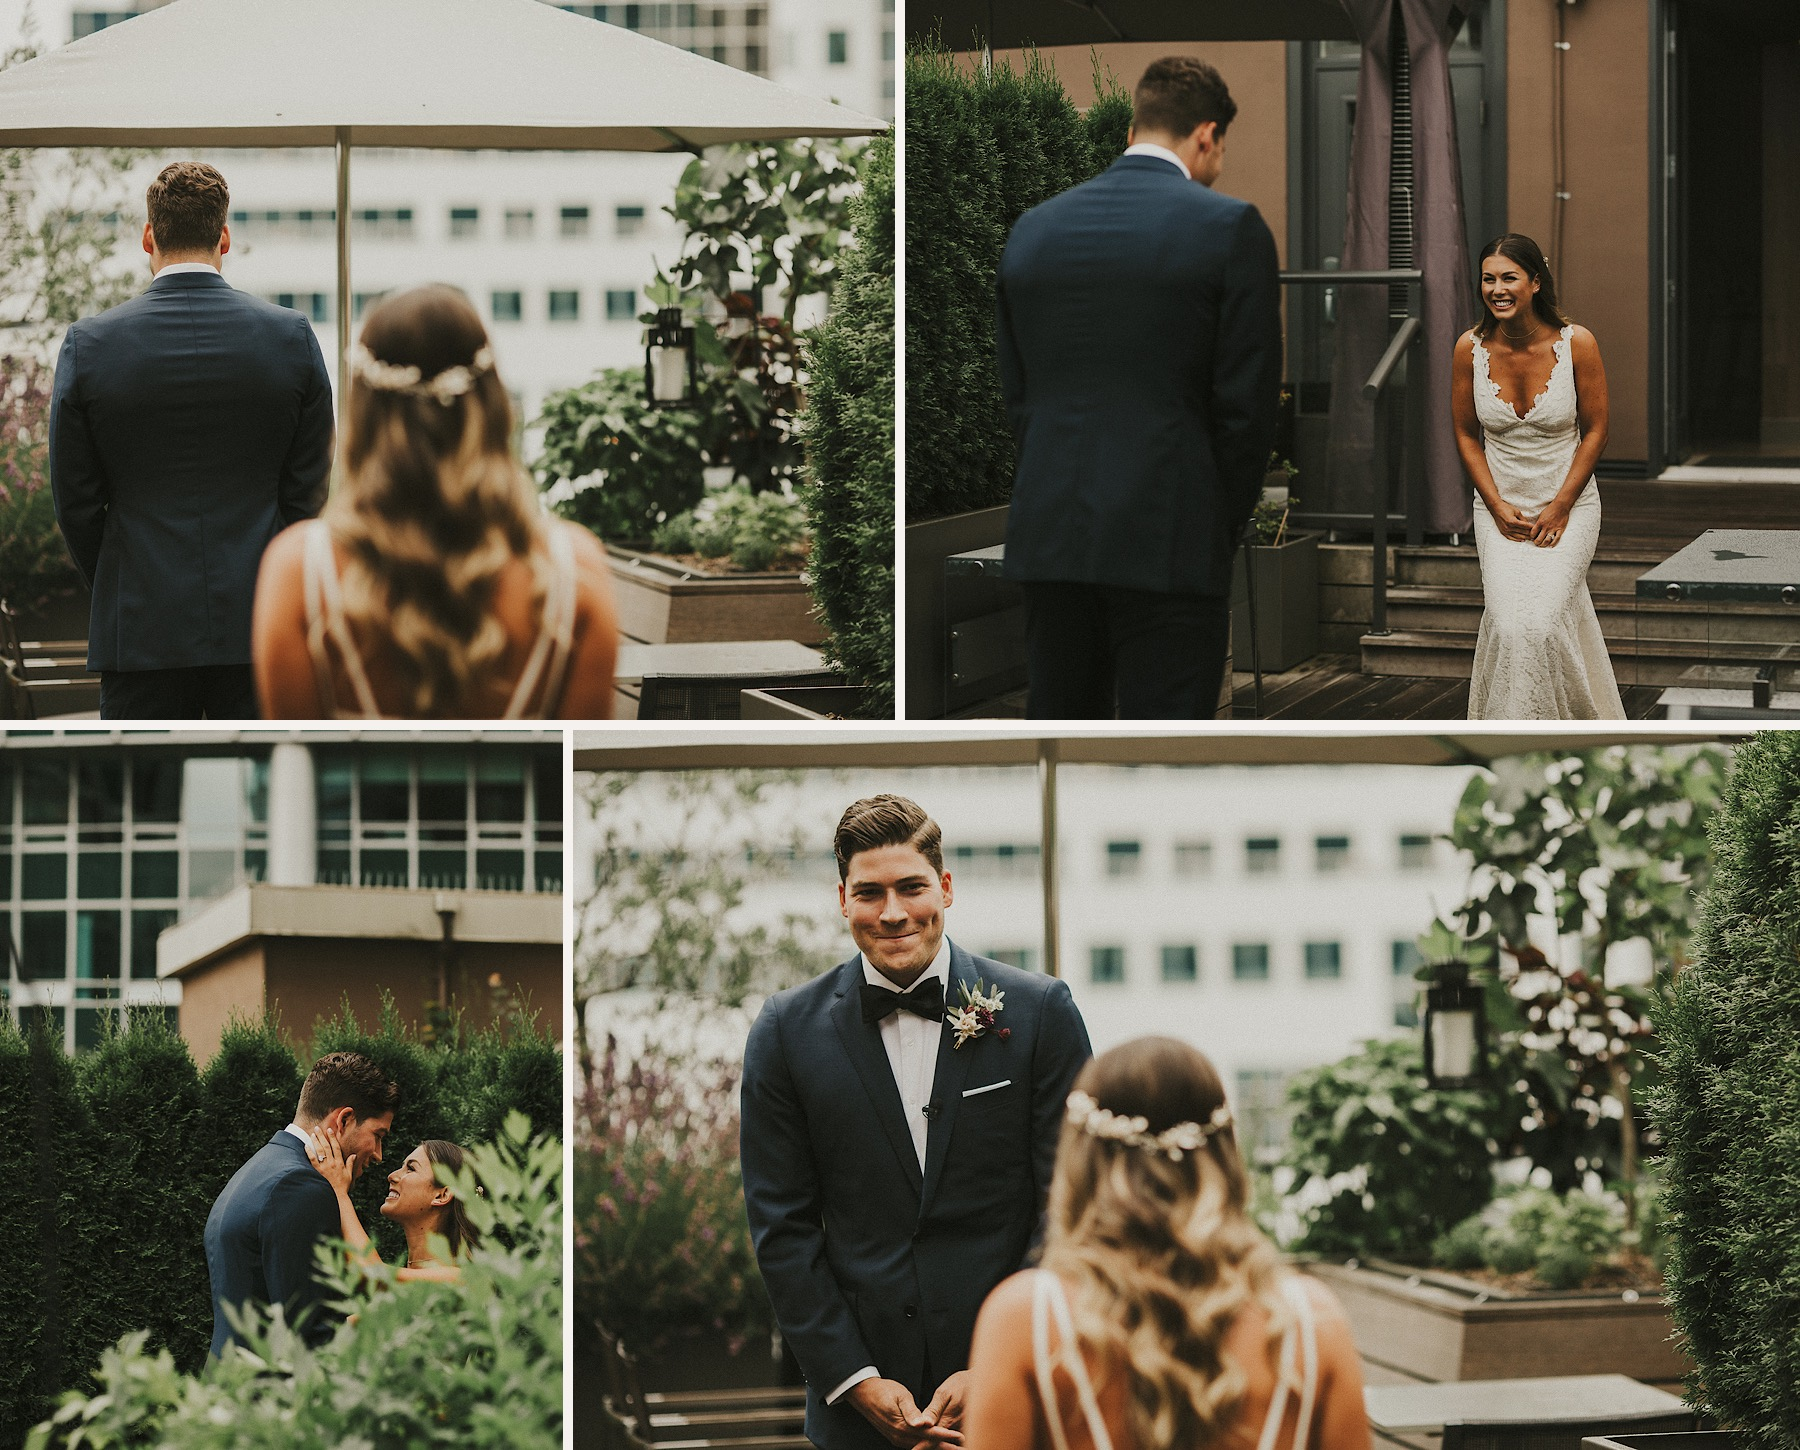 A Vancouver Club Wedding first look